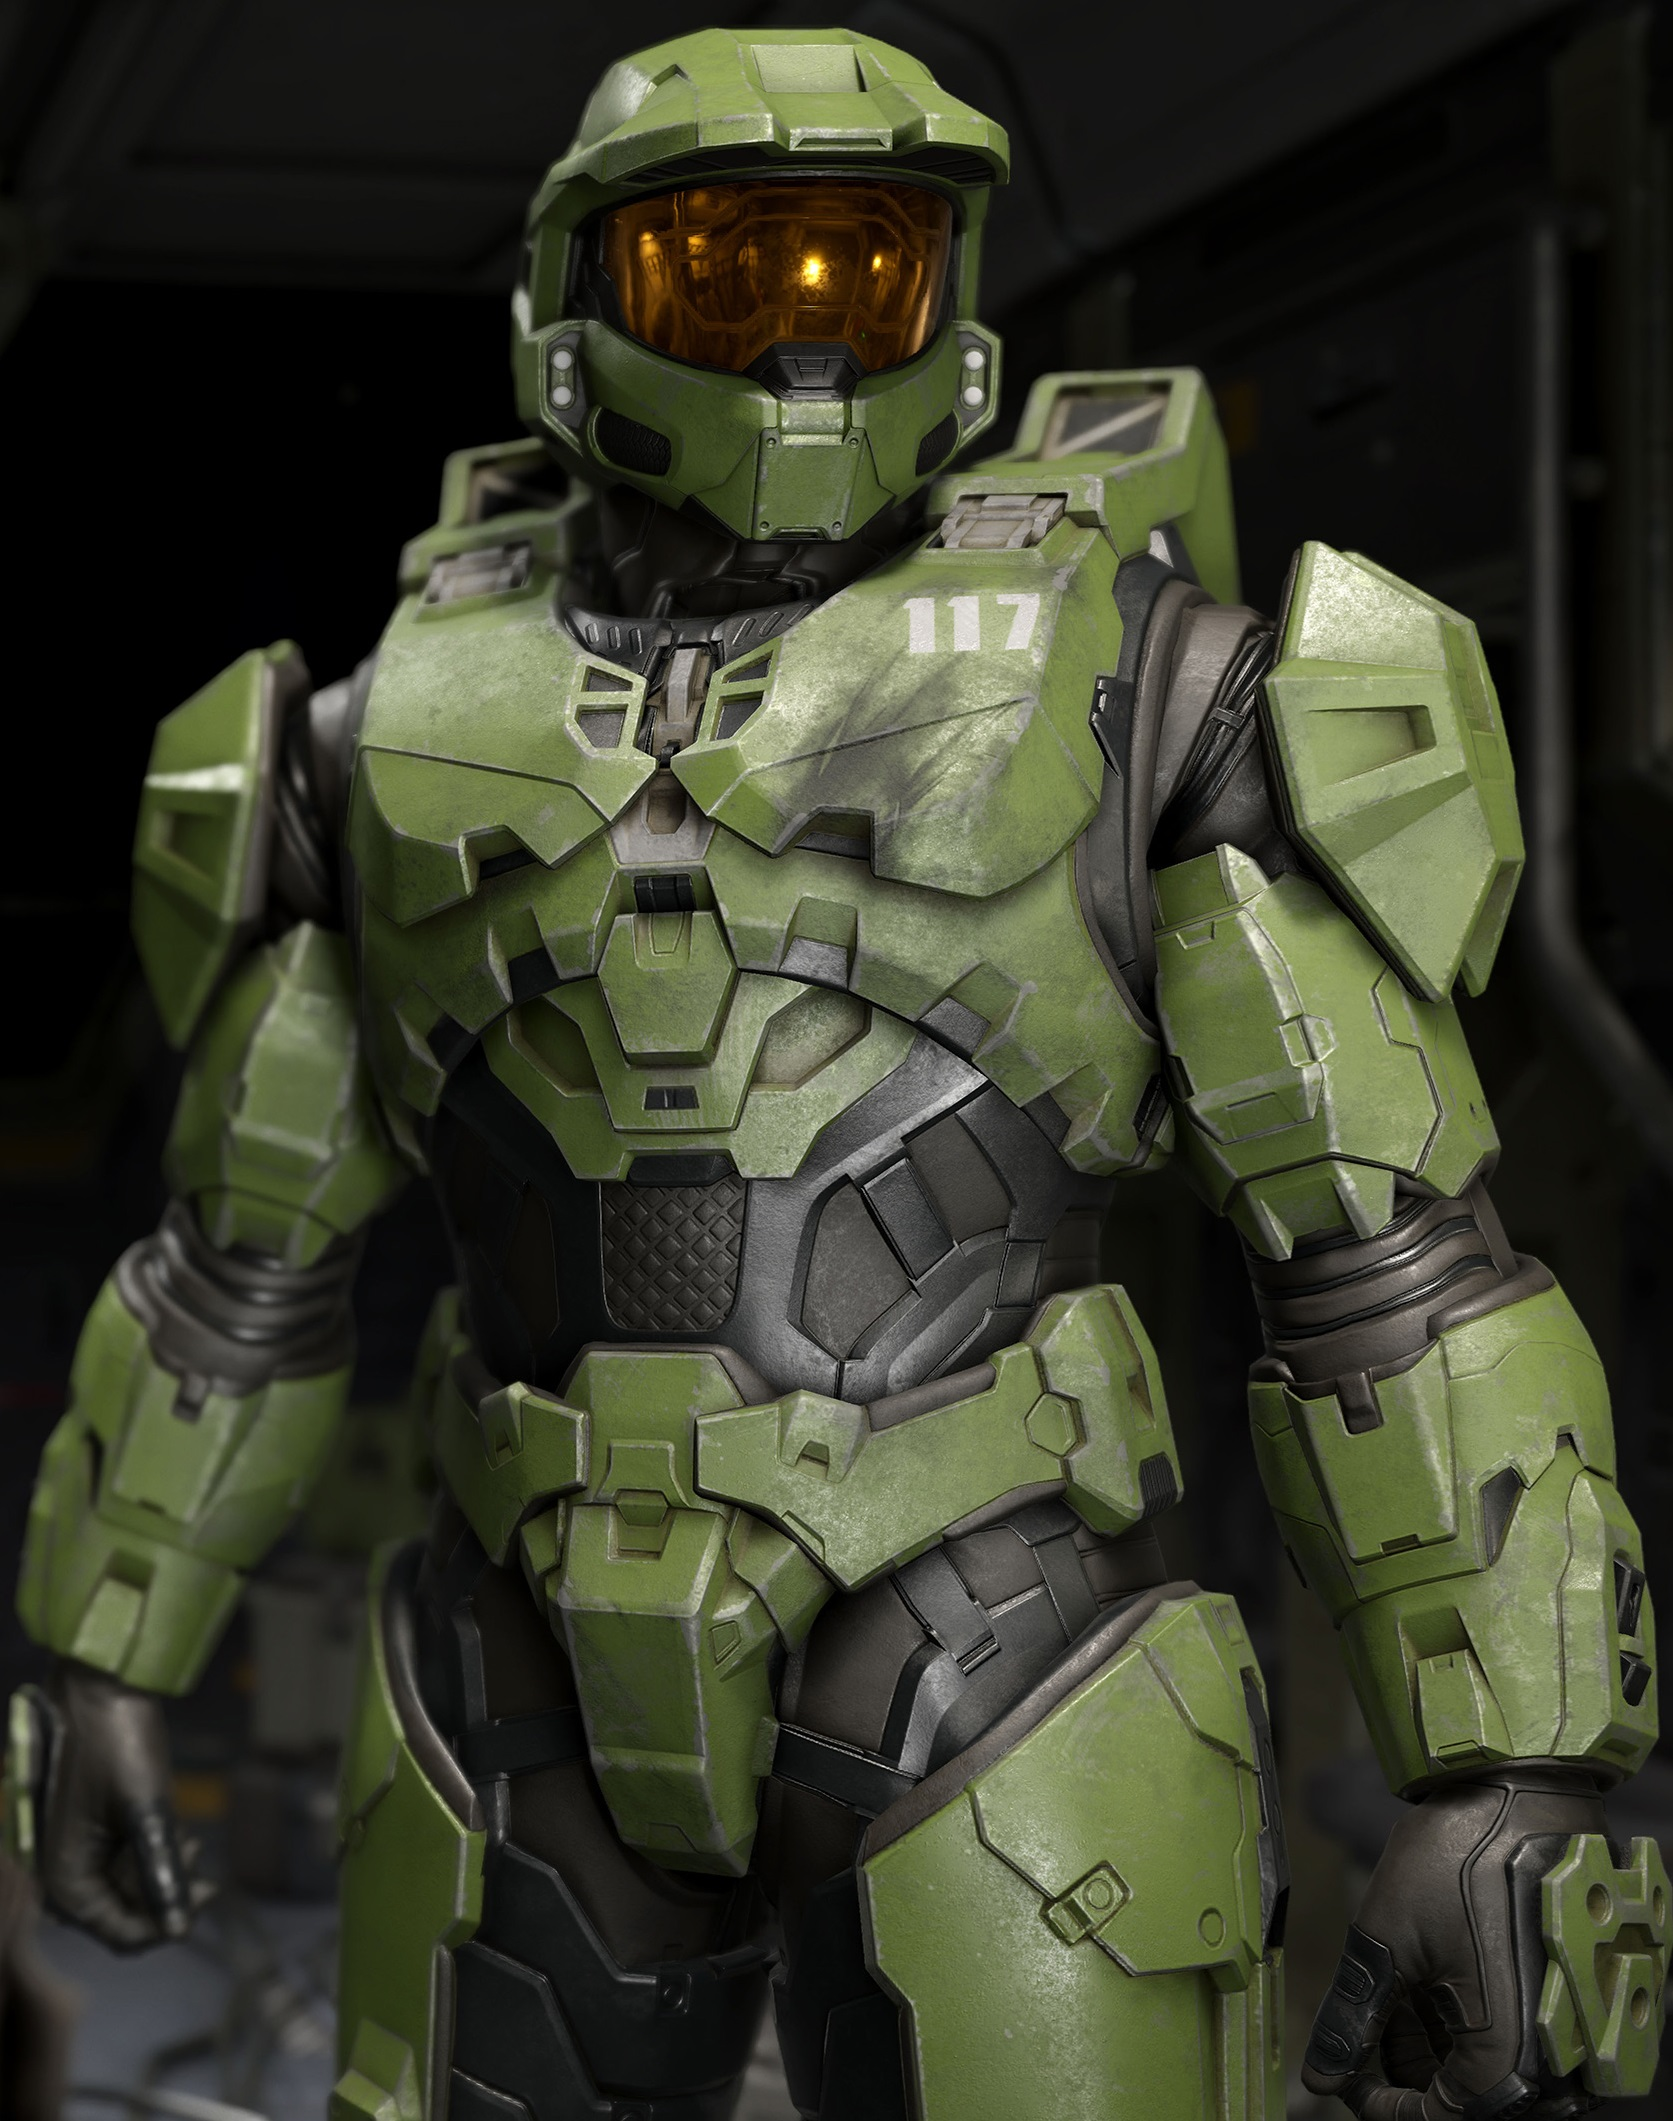 Halo 5 Master Chief Helmet : master, chief, helmet, Master, Chief's, Iconic, Armor, Changed, Years